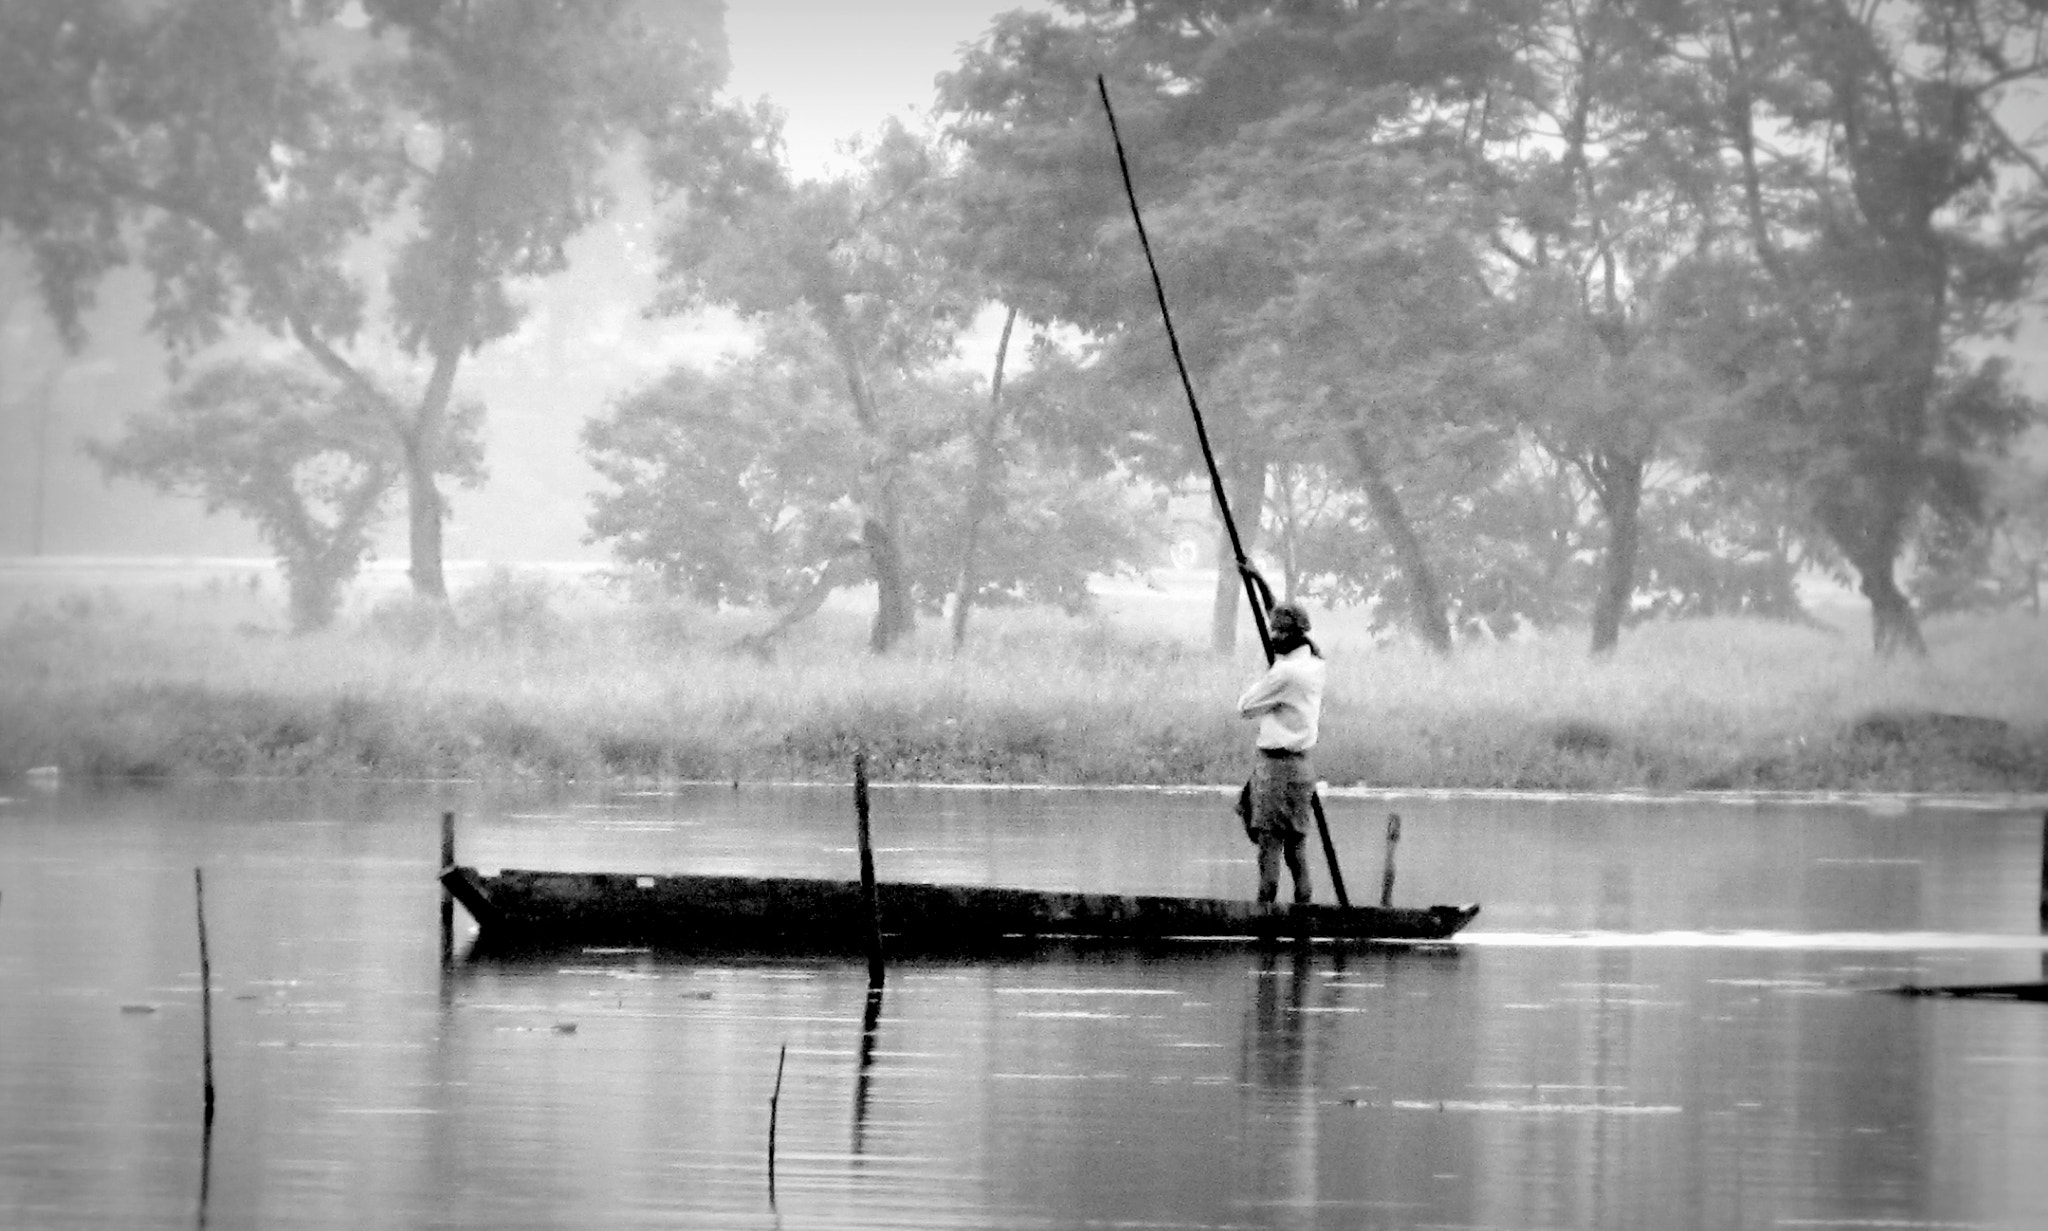 Photograph lal mohan by Lal Mohan Hansdah on 500px